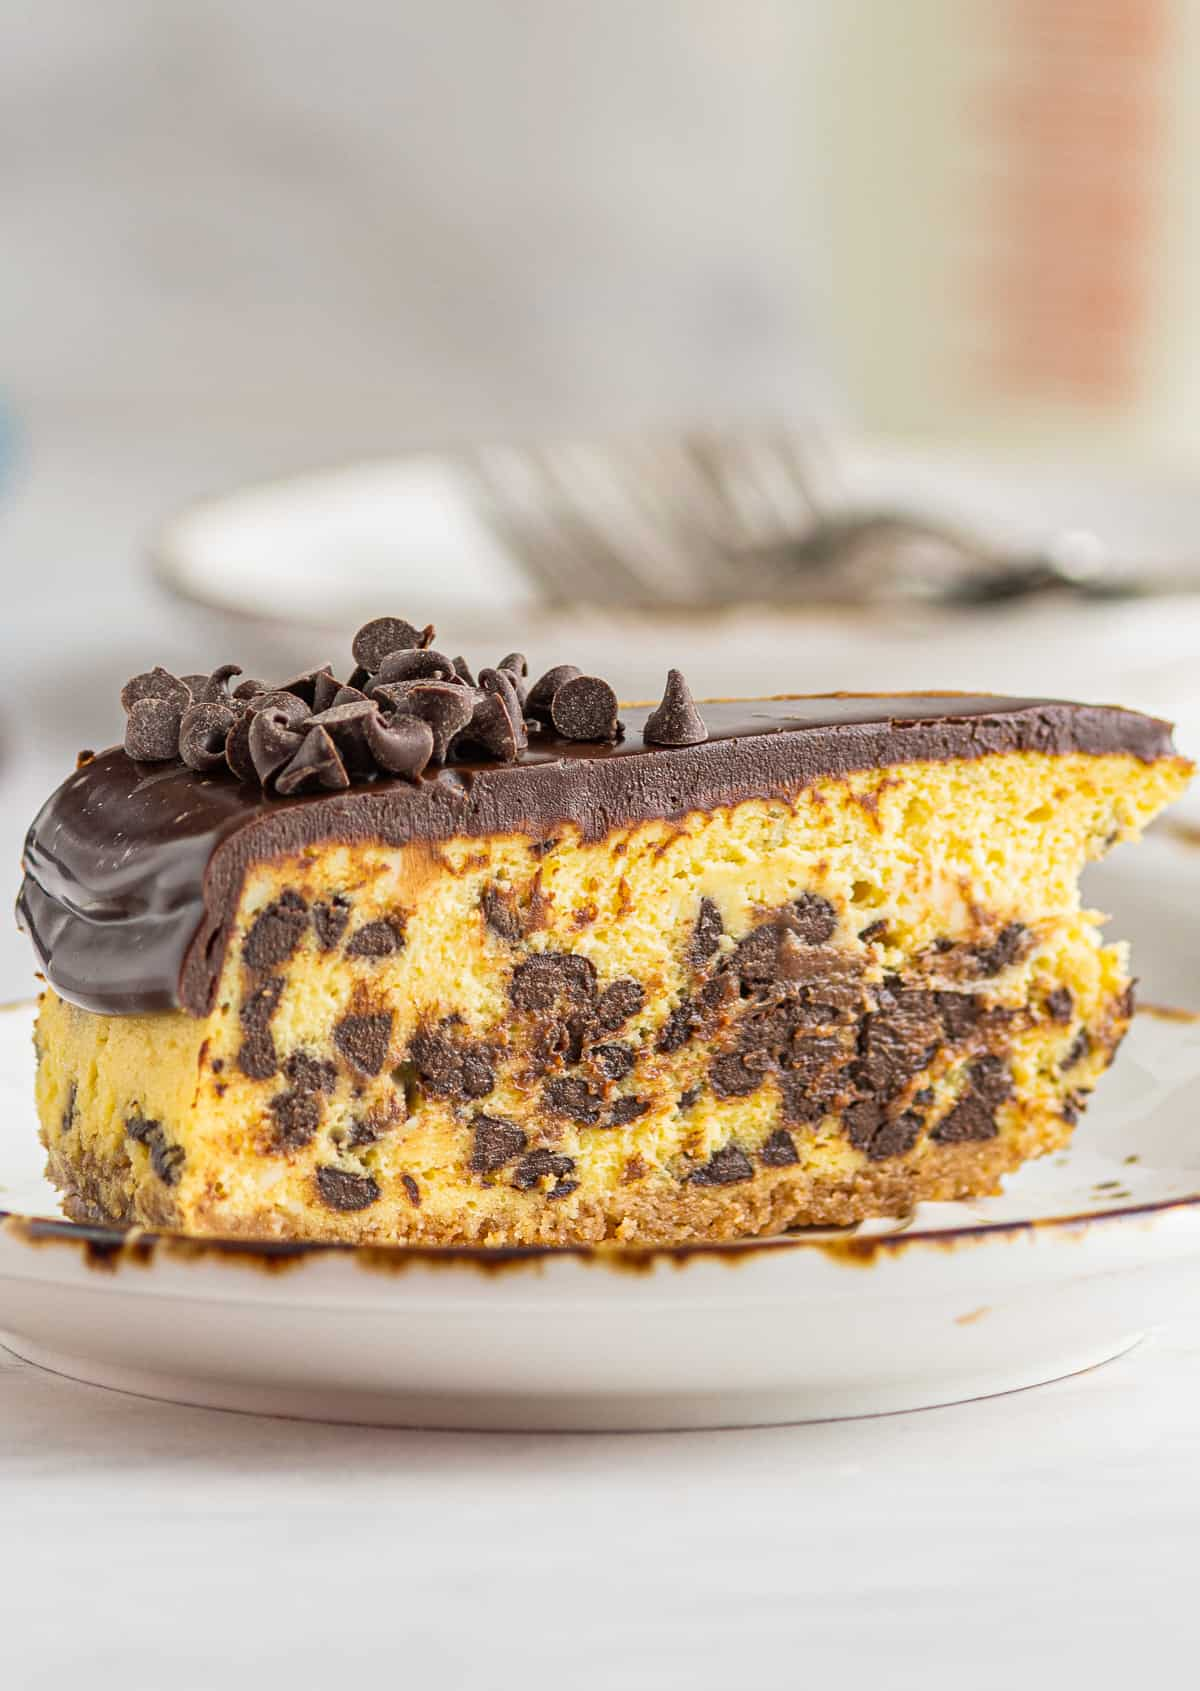 up close slice of chocolate chip cheesecake on white plate